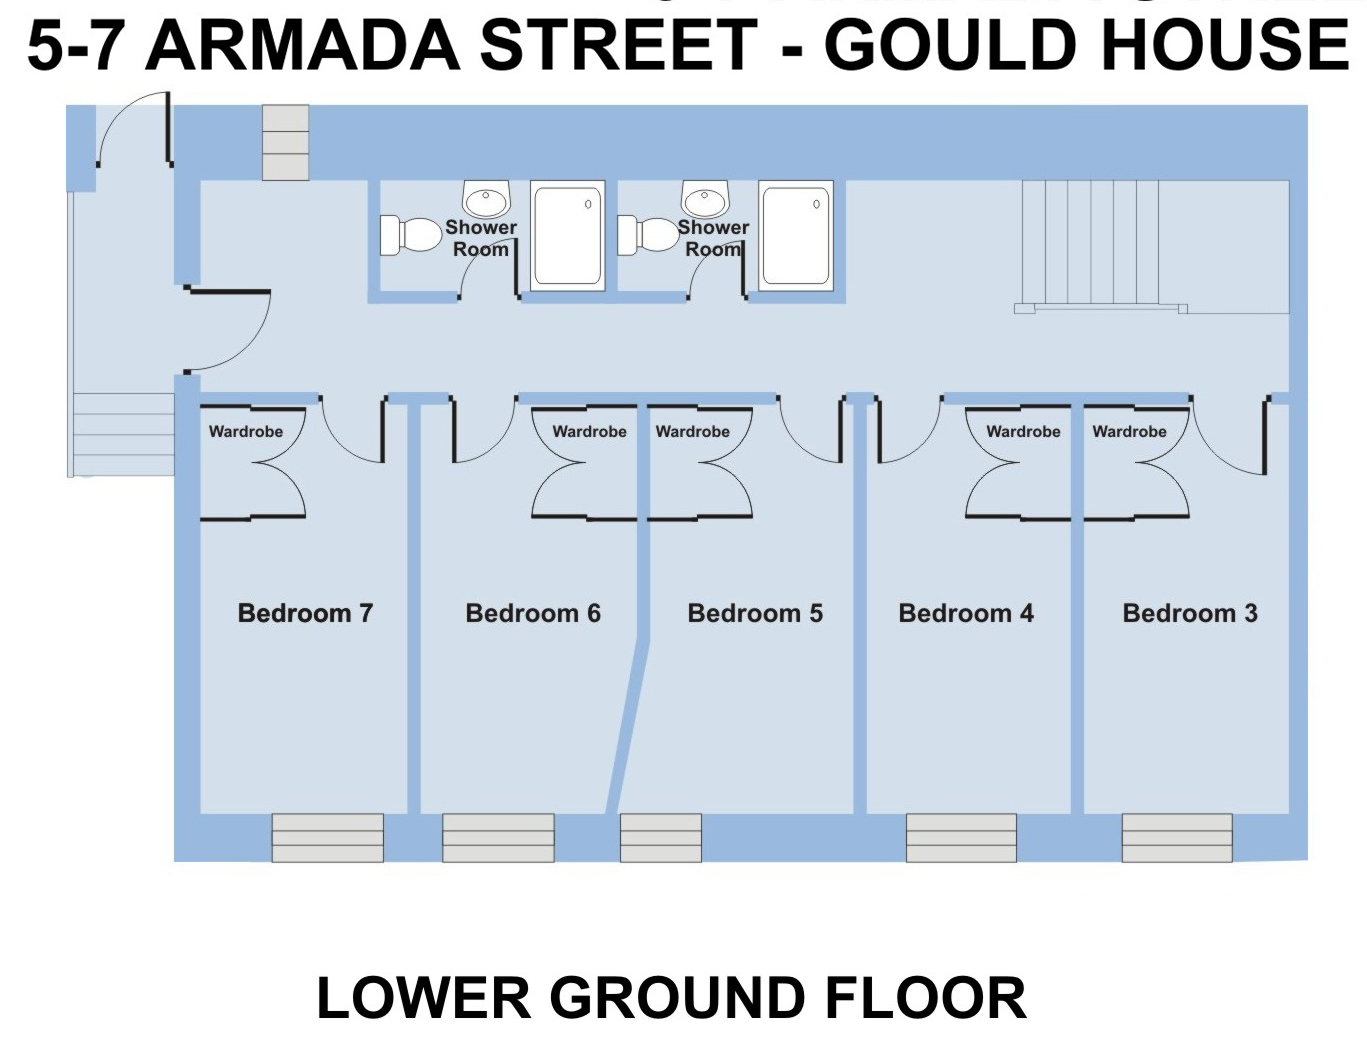 Gould House, 5-7 Armada St - 7 bedroom student accommodation Plymouth - Floor plan